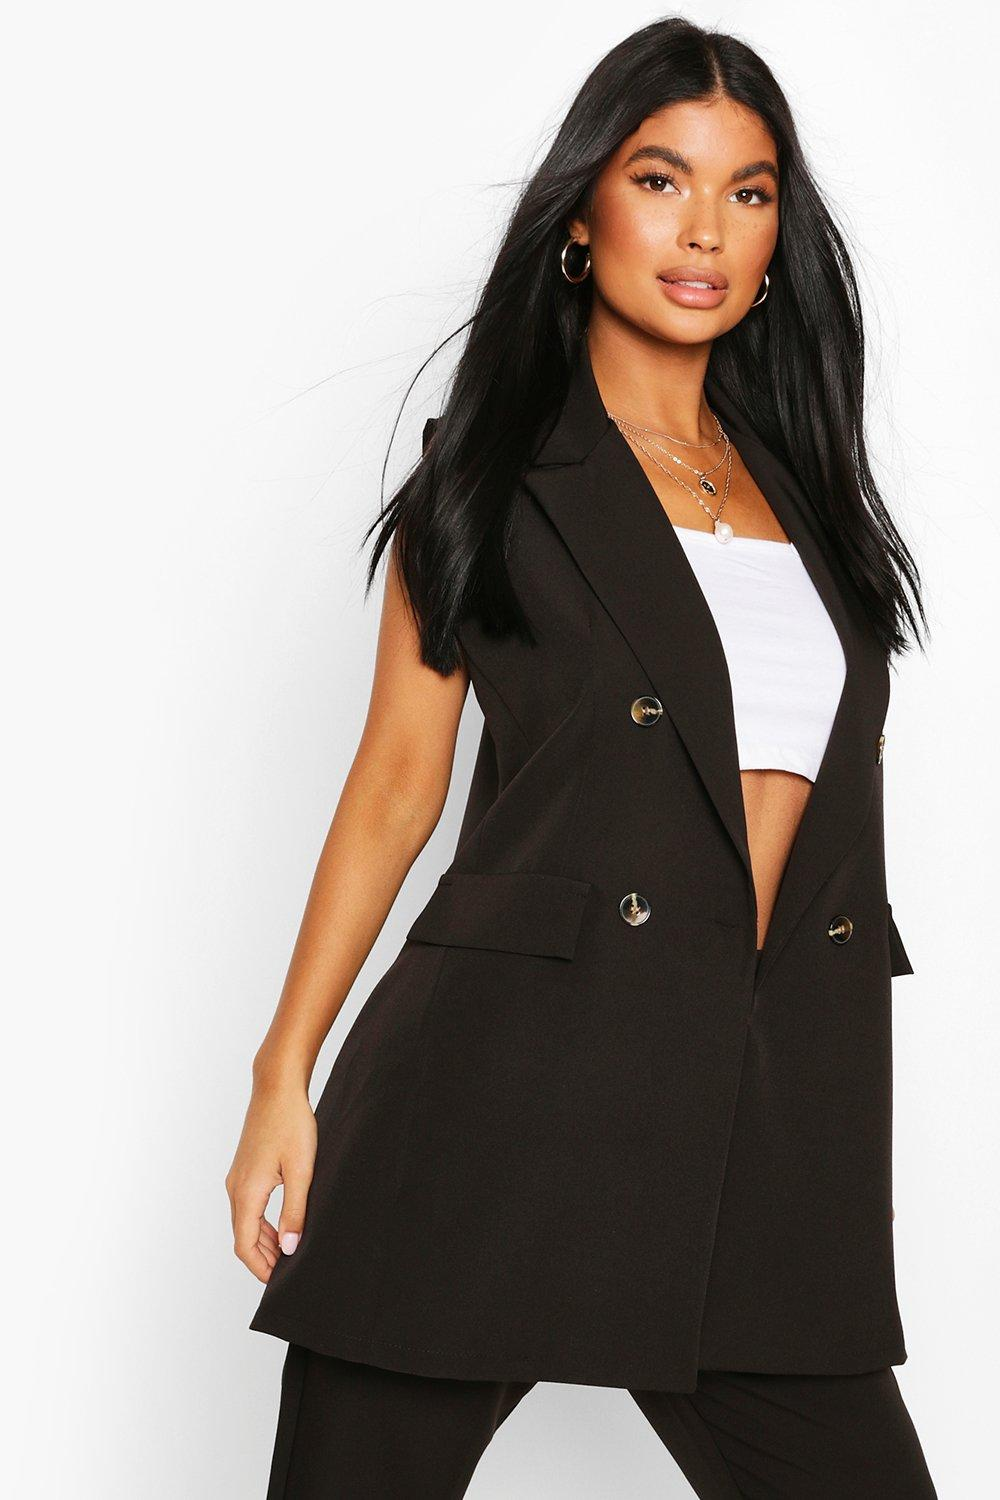 boohoo Womens Petite Double Breasted Sleeveless Blazer - Black - 4, Black